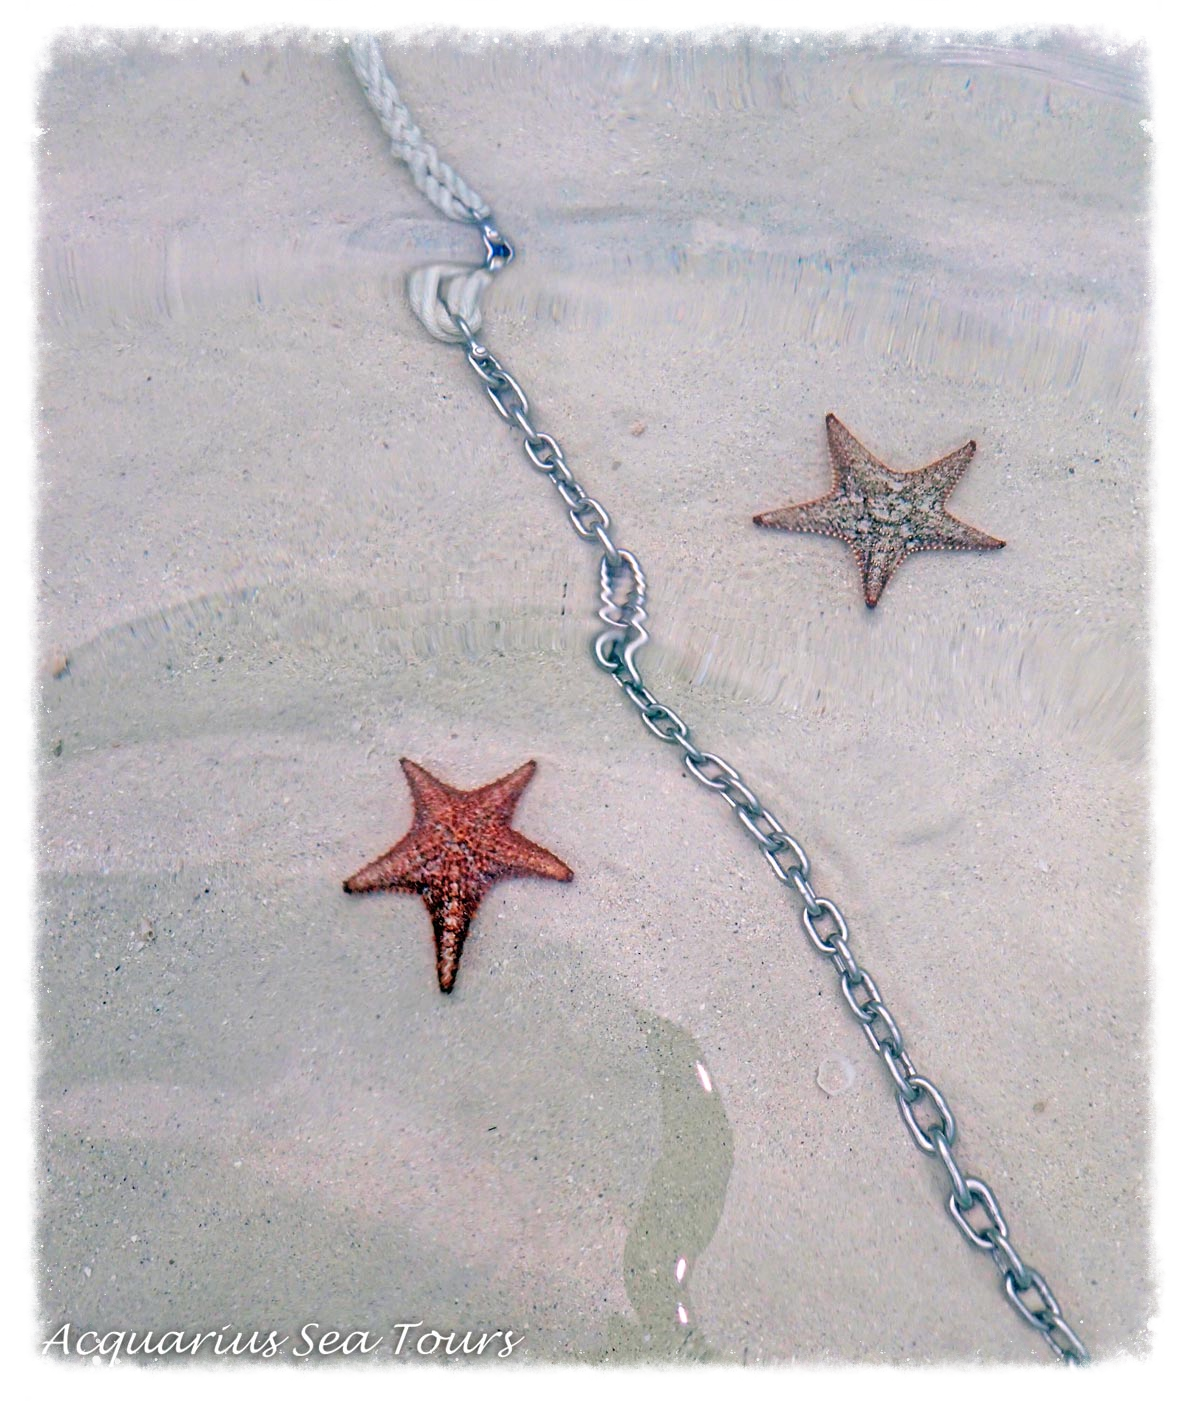 Moody skies but awesome water clarity yesterday ... anchor line & Sea Stars at Starfish Point